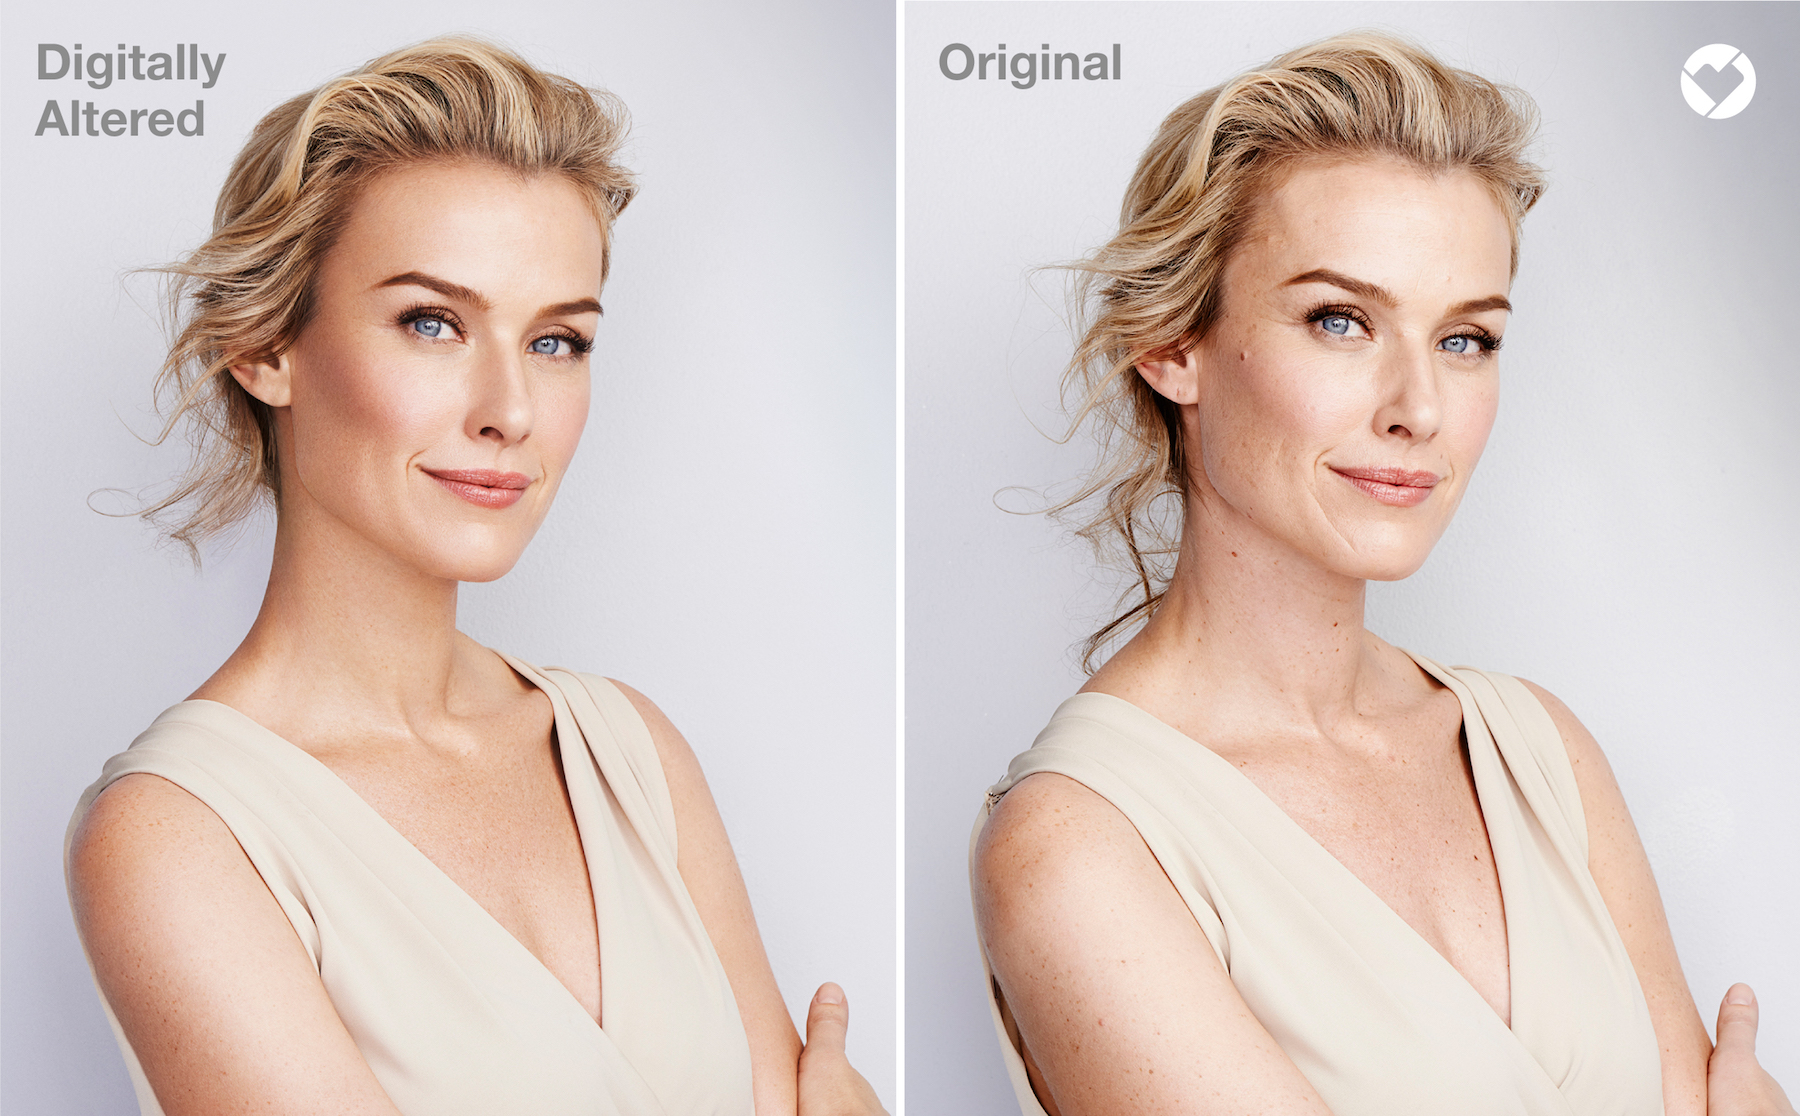 CVS Promises to Stop Using Photoshopped Images in Its Beauty Aisle